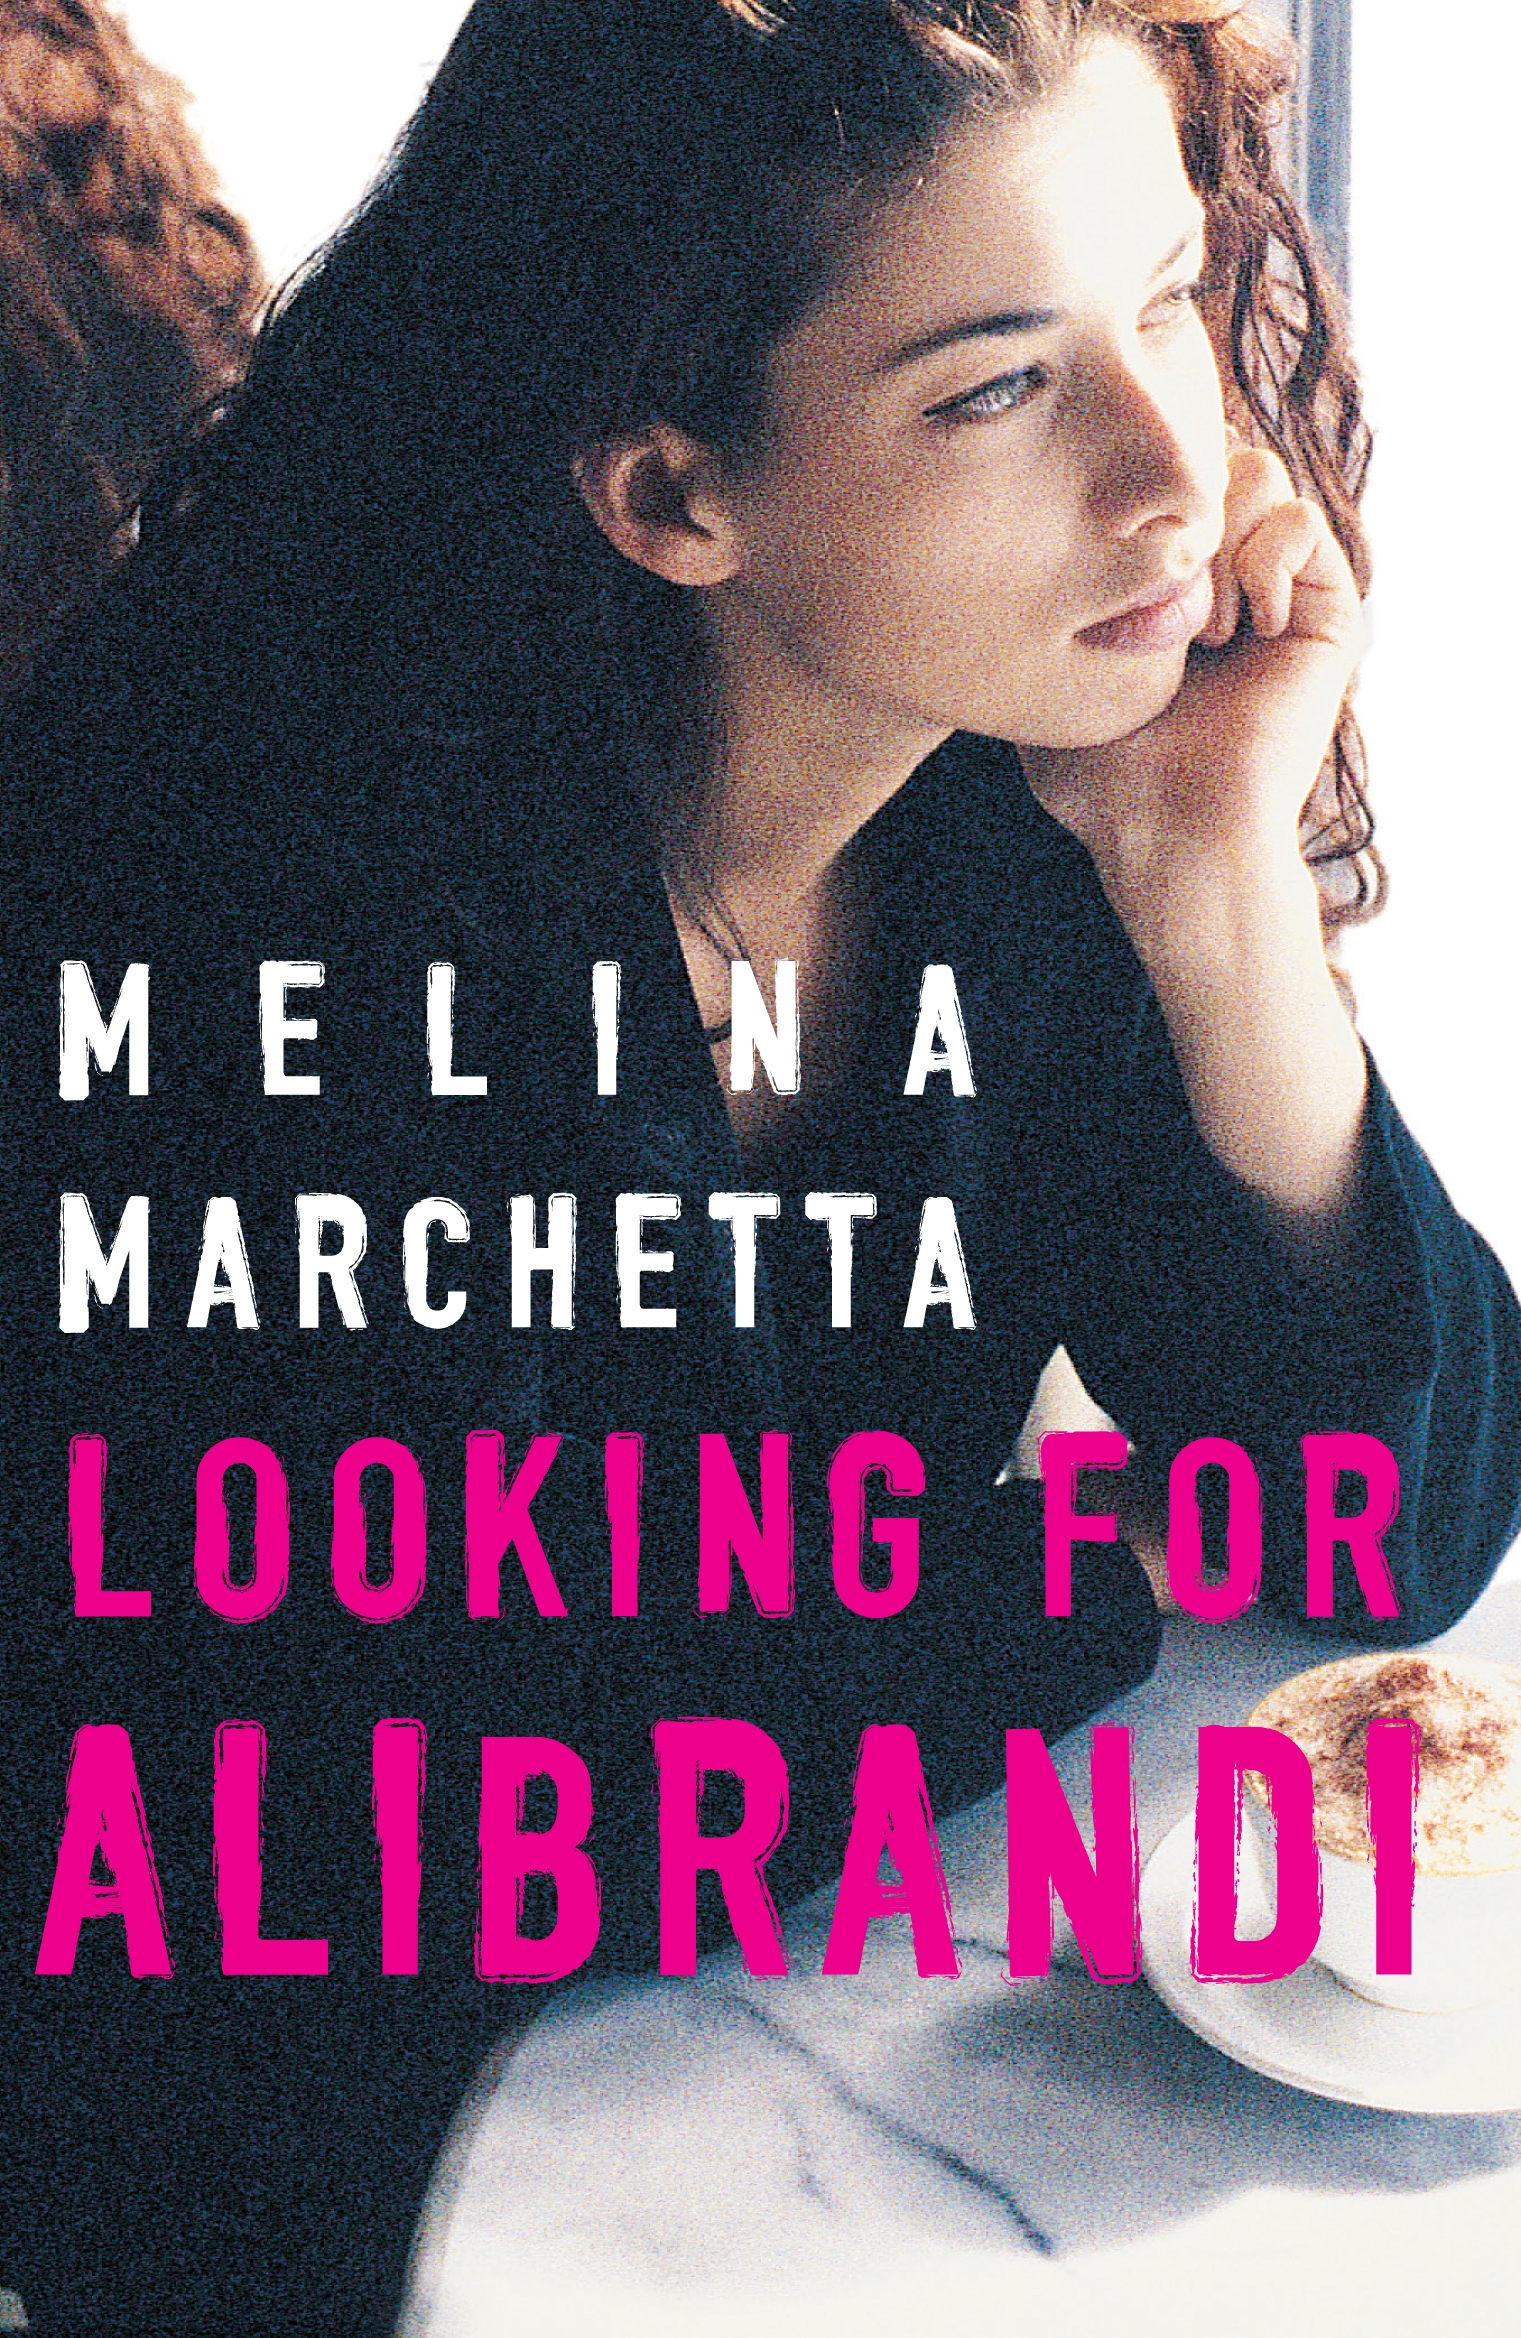 Cover image of the book, 'Looking for Alibrandi' by Melina Marchetta